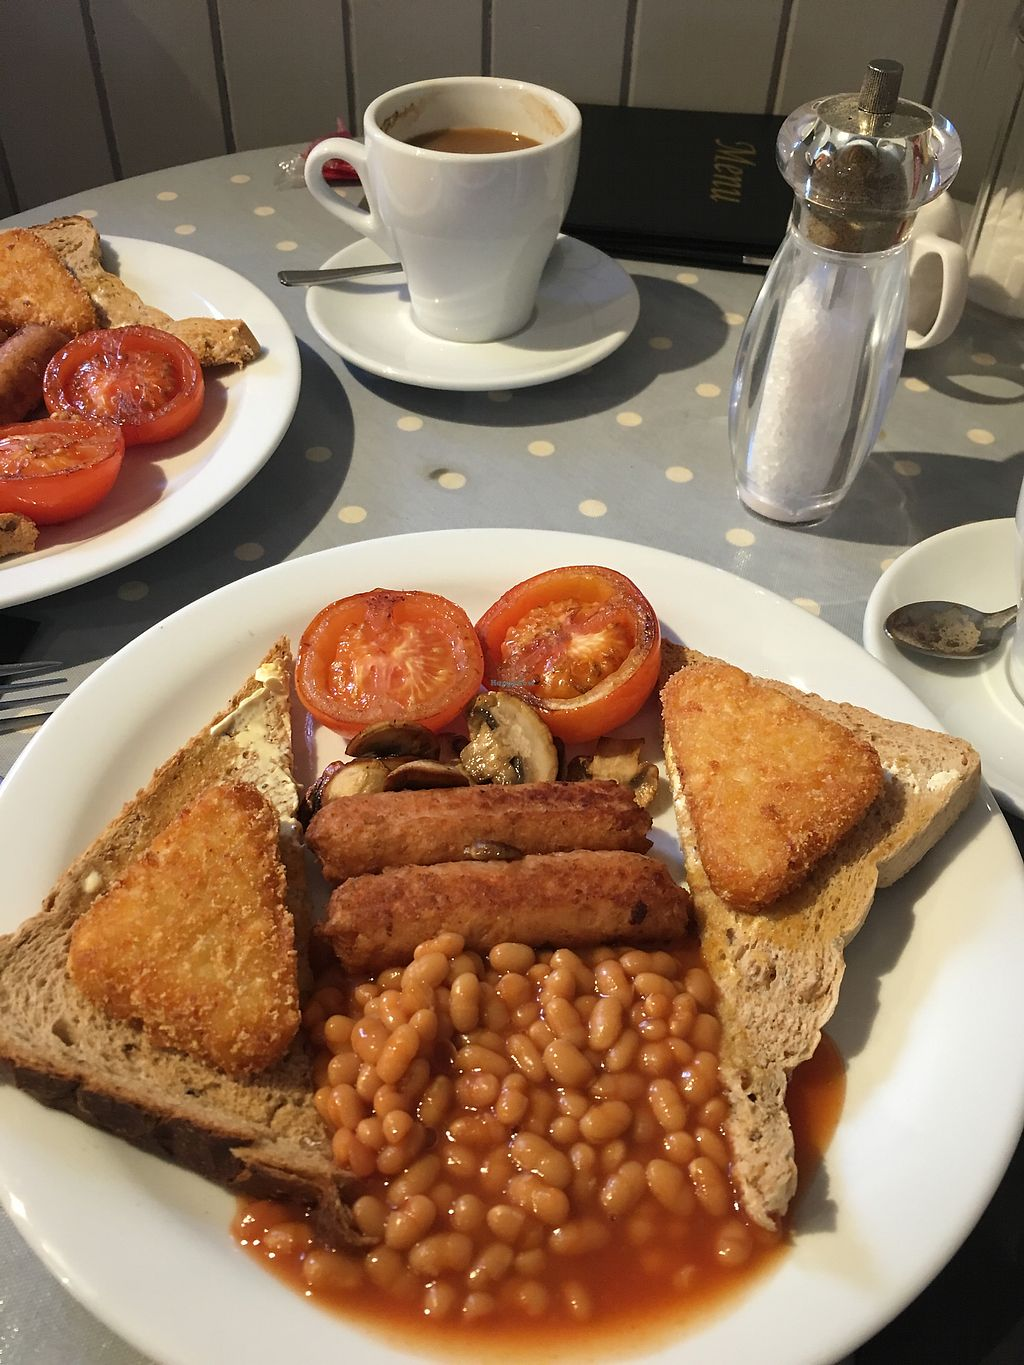 """Photo of The Jetty Cafe  by <a href=""""/members/profile/AnnieLouiseHasler"""">AnnieLouiseHasler</a> <br/>Vegan breakfast  <br/> February 21, 2018  - <a href='/contact/abuse/image/102426/362150'>Report</a>"""